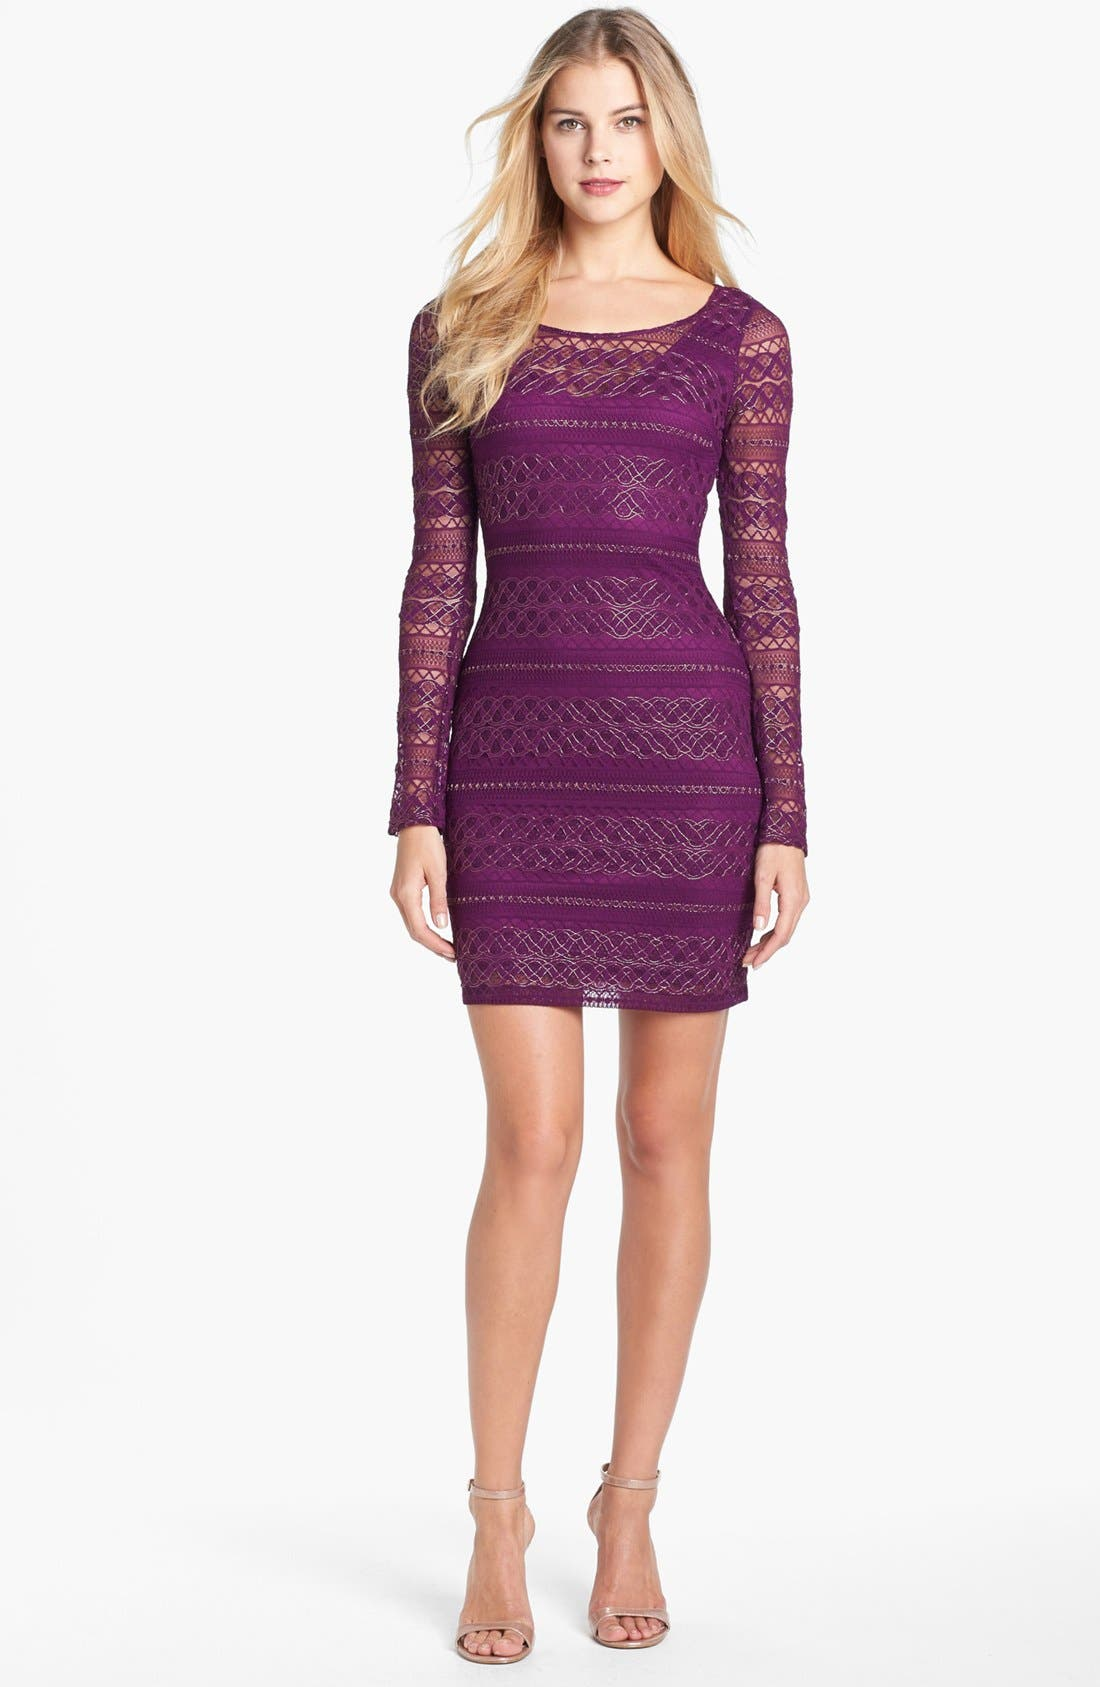 Main Image - GUESS Metallic Lace Knit Sheath Dress